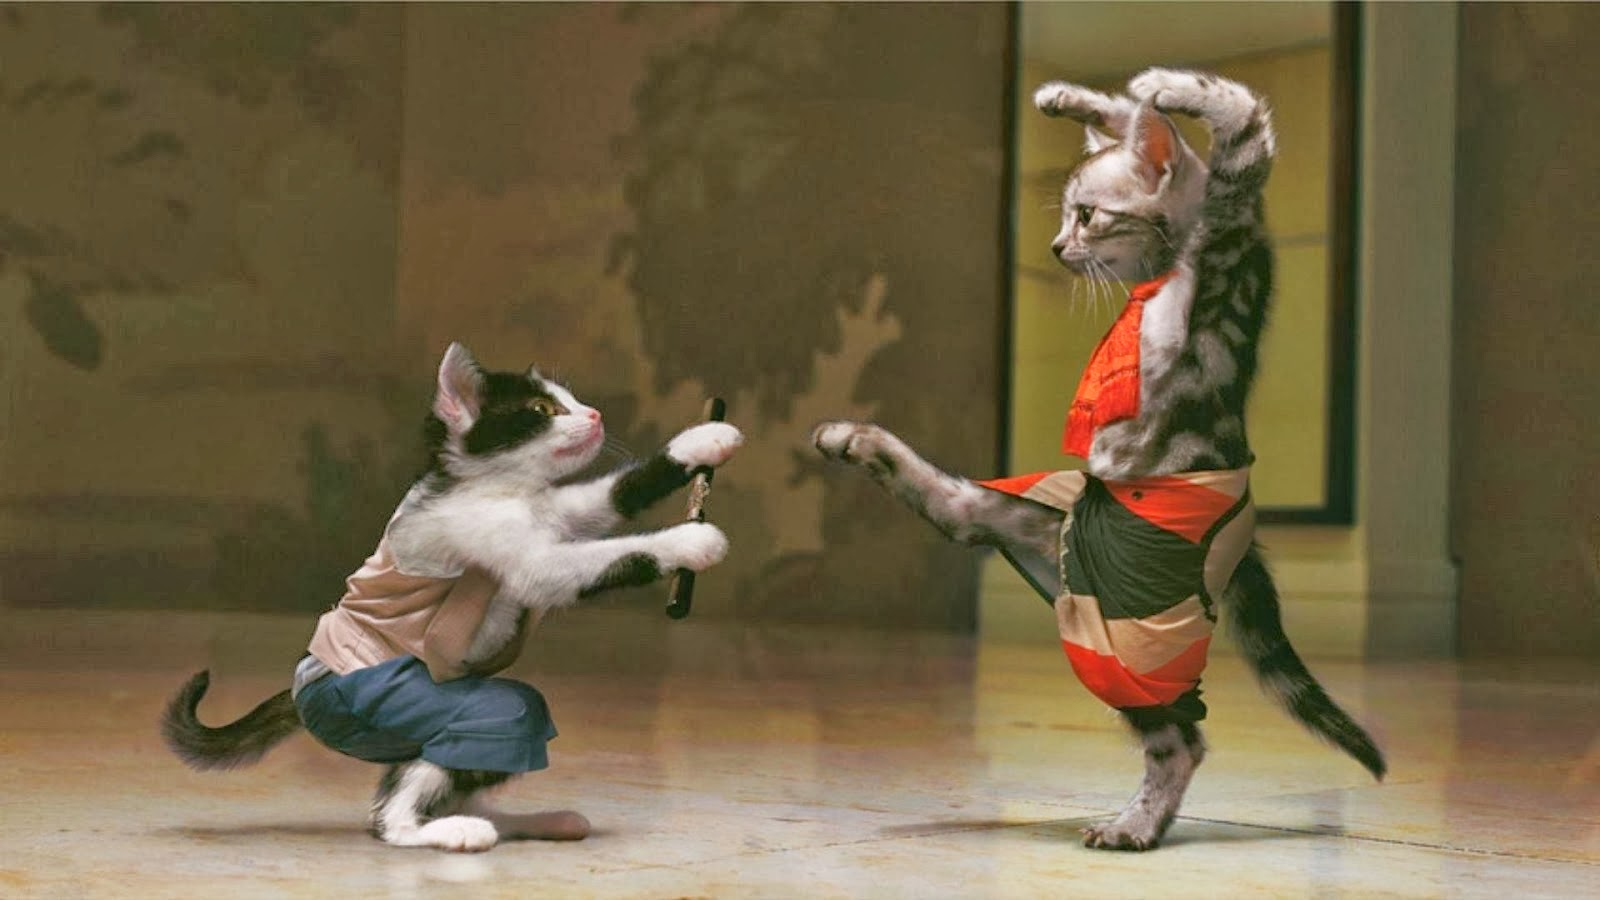 Funny animal wallpapers interesting new pictures funny - Funny animal wallpapers ...